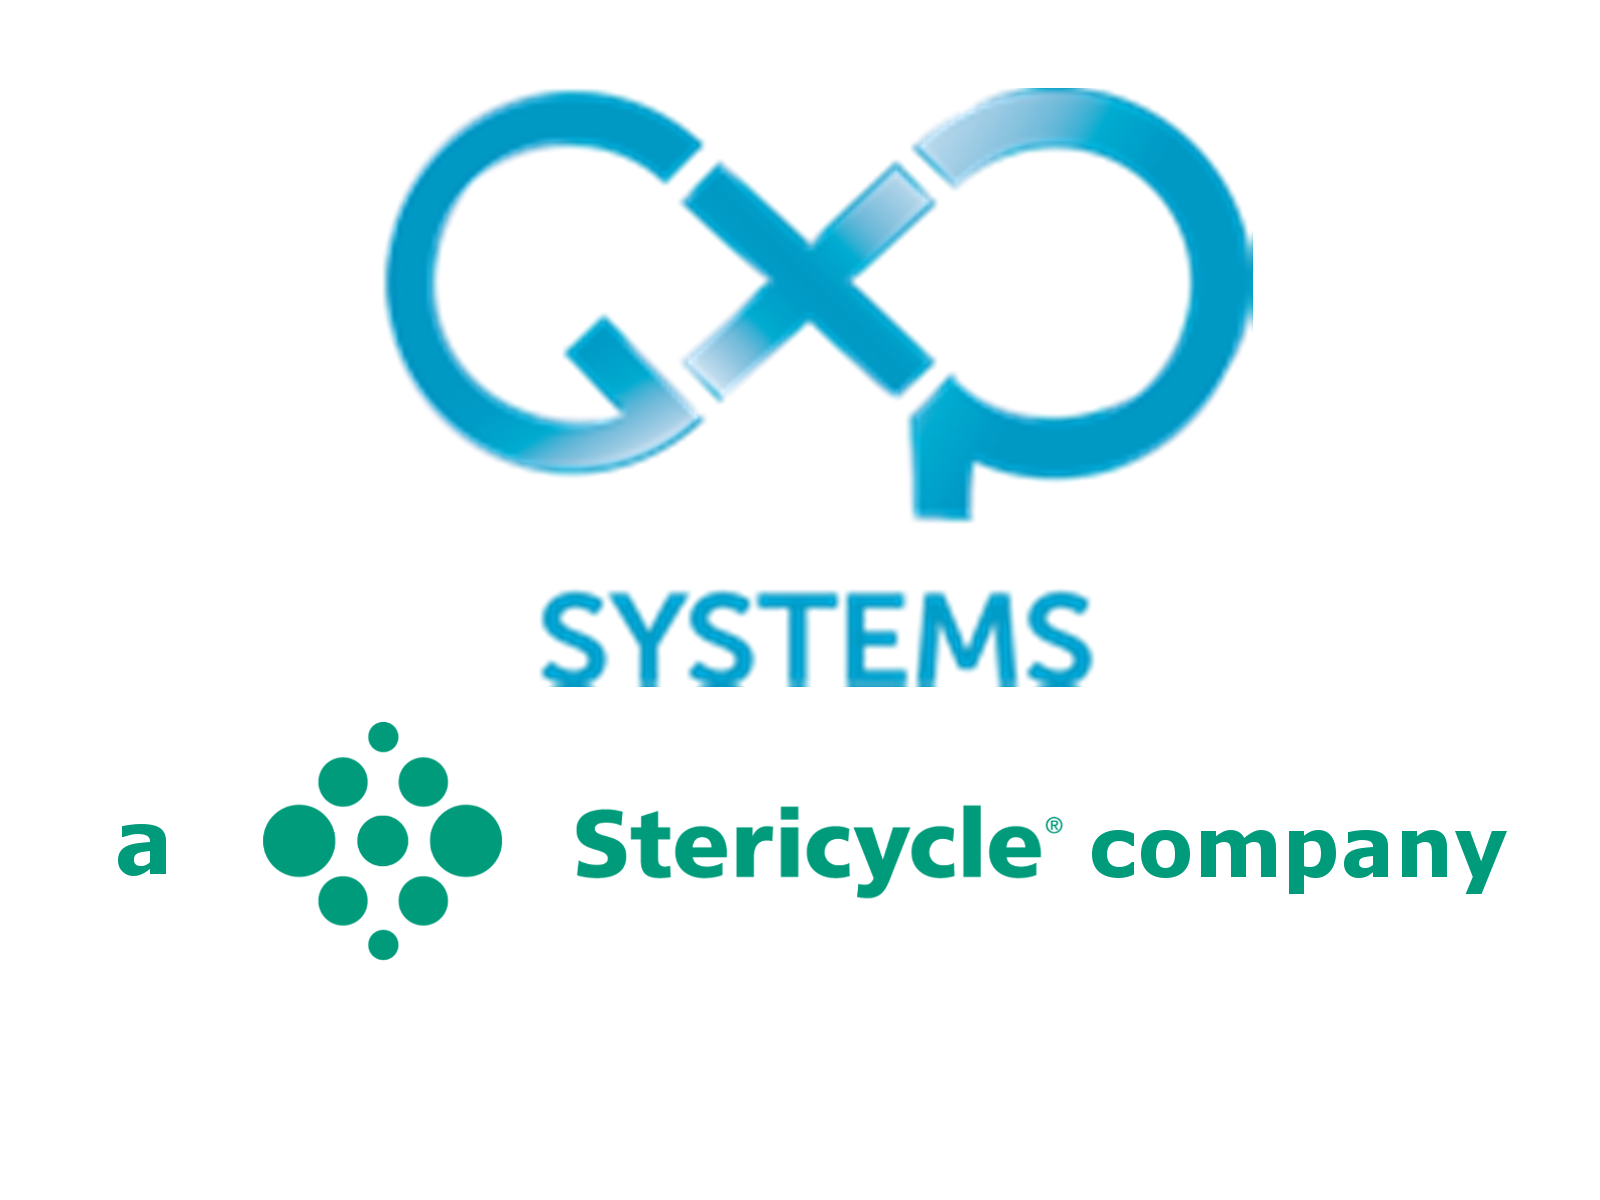 gxp-a-stericycle-company-logo-transp